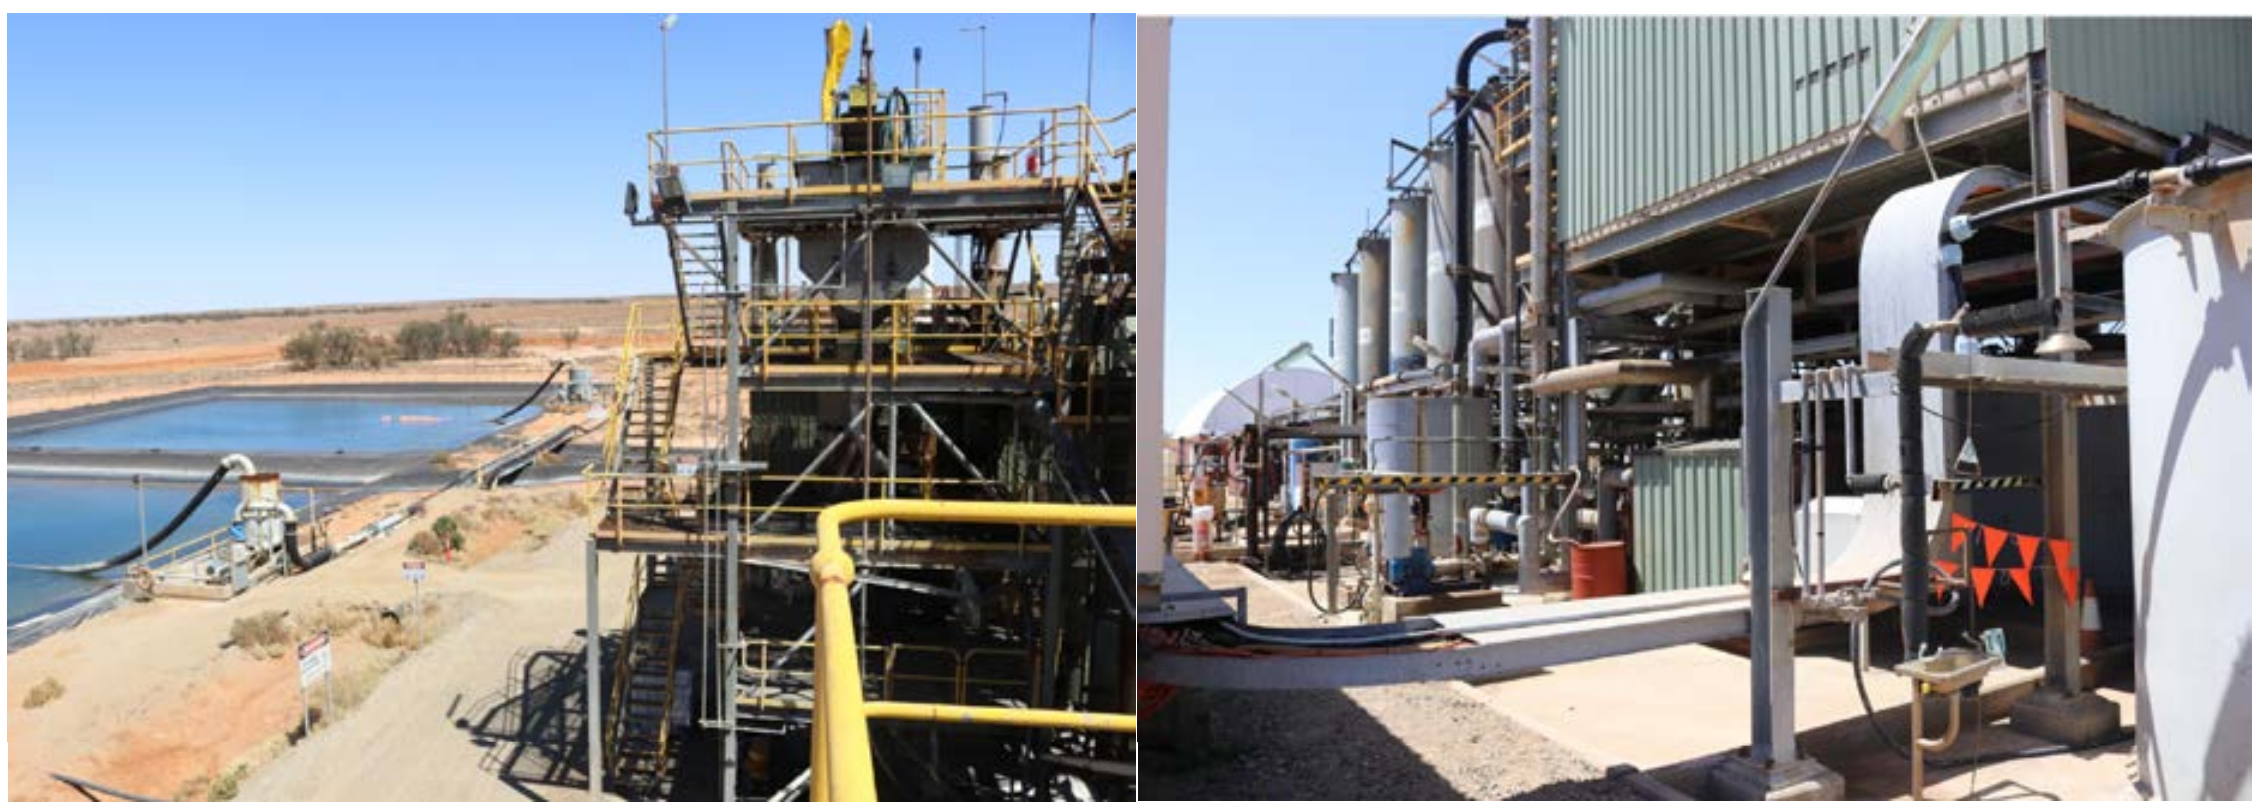 Figures: Existing Gold Recovery Plant